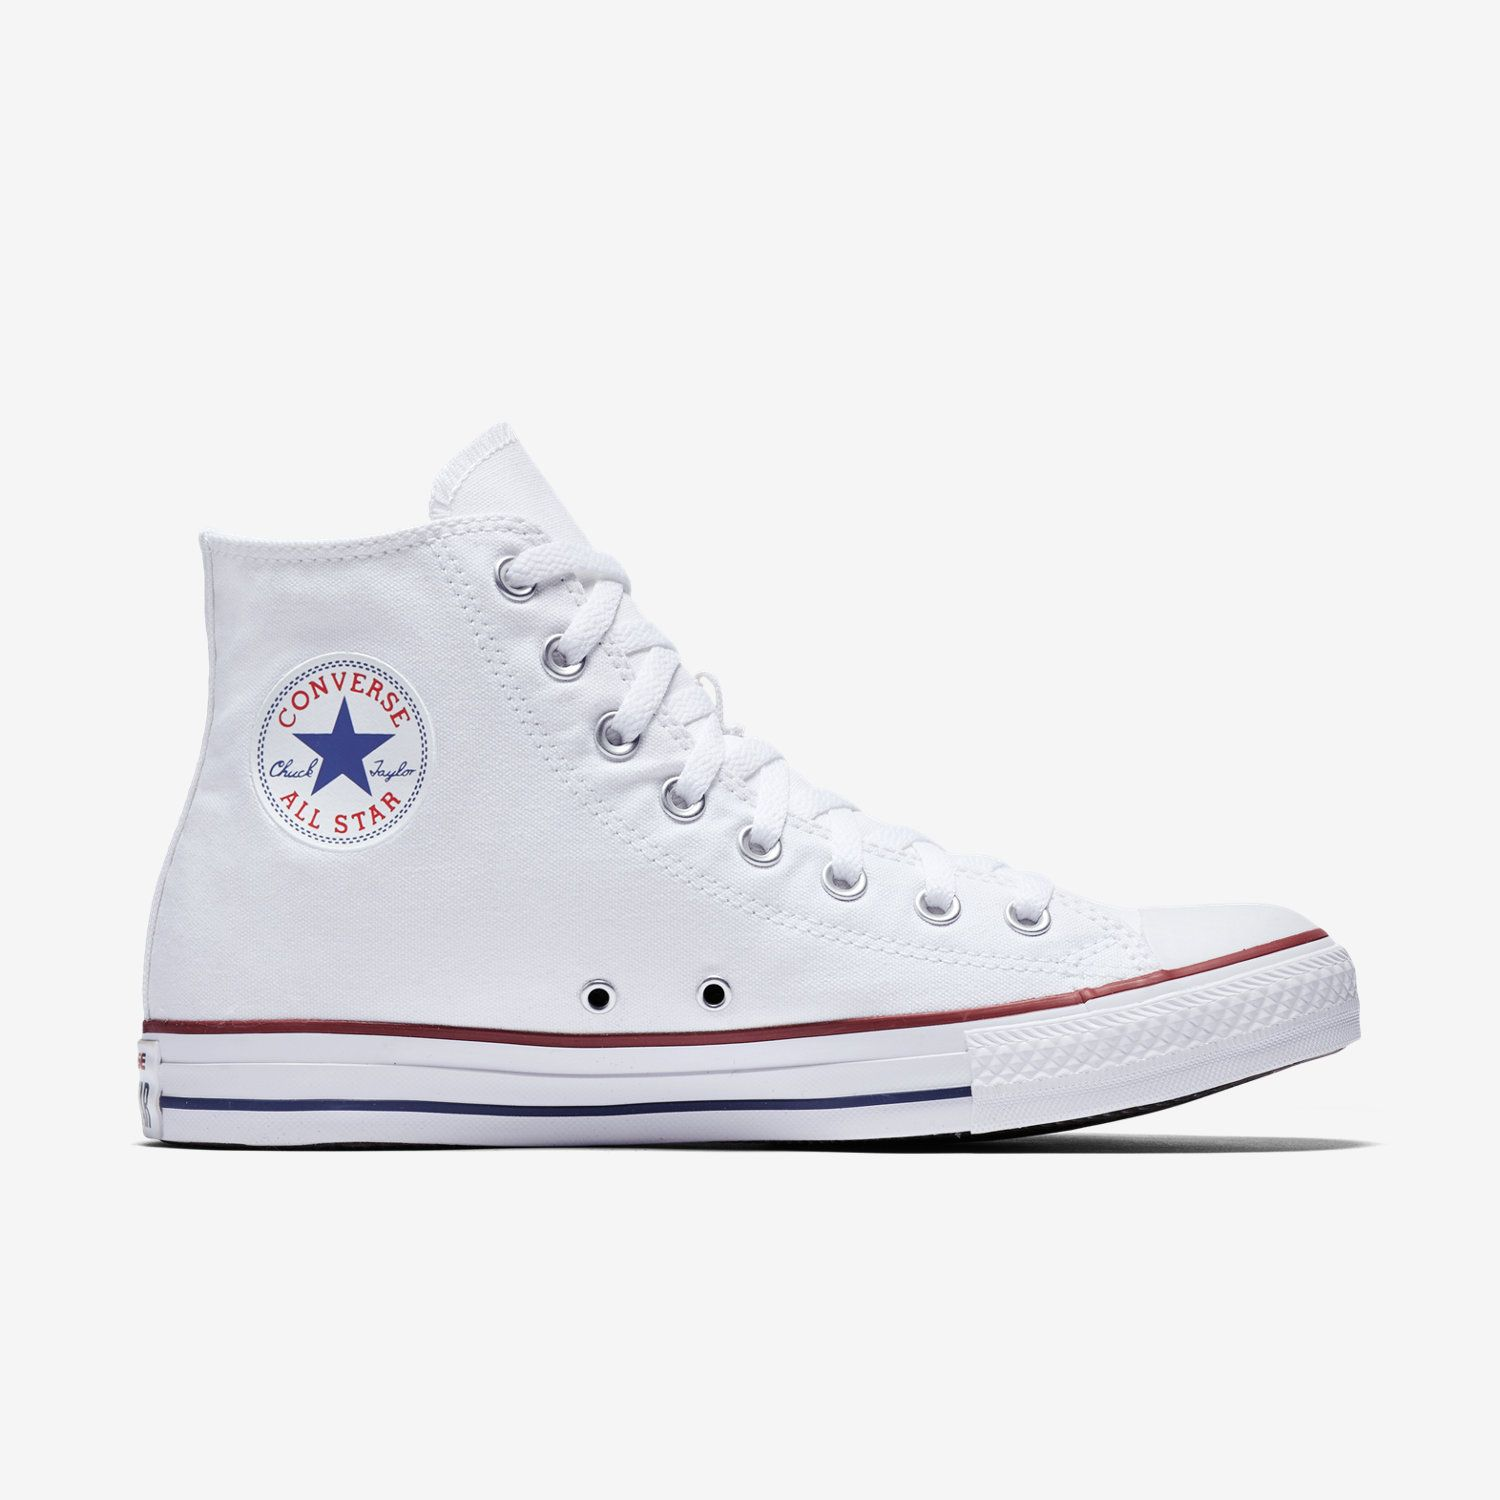 Converse lo i Top Taglia 8 Borgogna Bianco Dark Red/PORTA All Stars